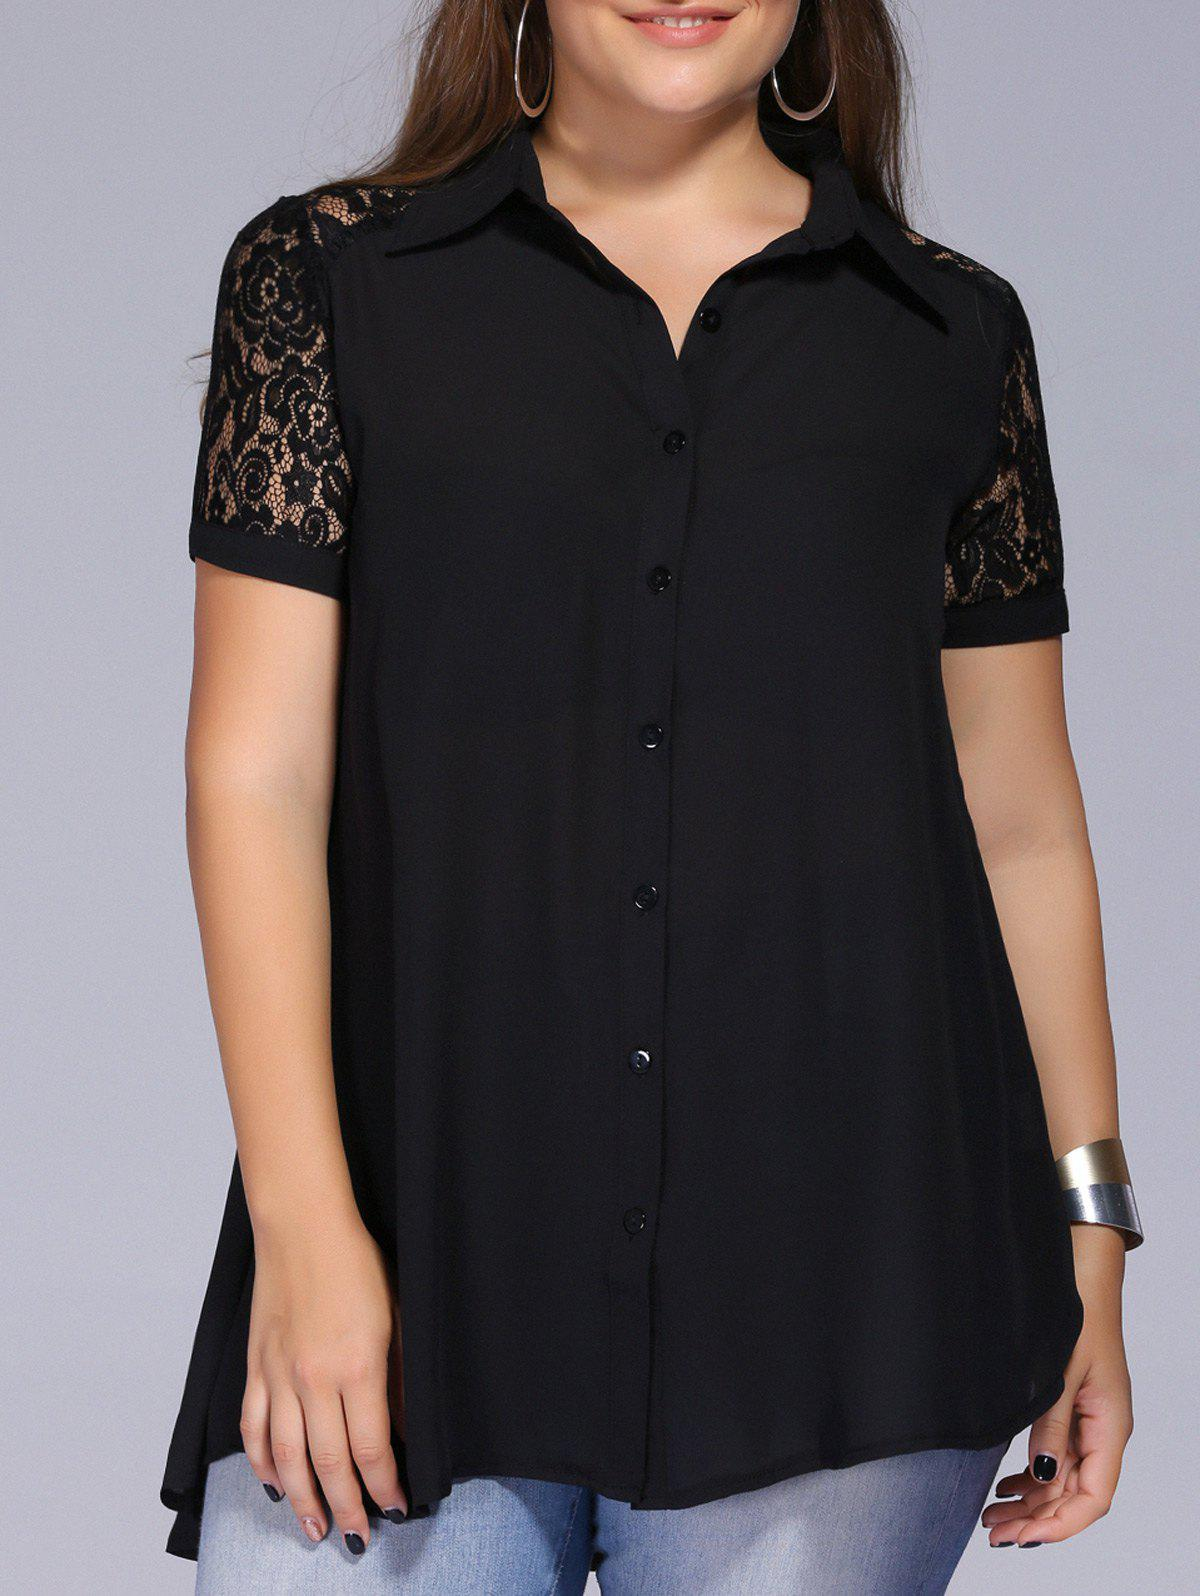 Lace Trim Plus Size Tunic BlouseWOMEN<br><br>Size: 3XL; Color: BLACK; Material: Acetate,Spandex; Shirt Length: Long; Sleeve Length: Short; Collar: Shirt Collar; Style: Fashion; Season: Spring,Summer; Embellishment: Lace; Pattern Type: Solid; Weight: 0.235kg; Package Contents: 1 x Blouse;